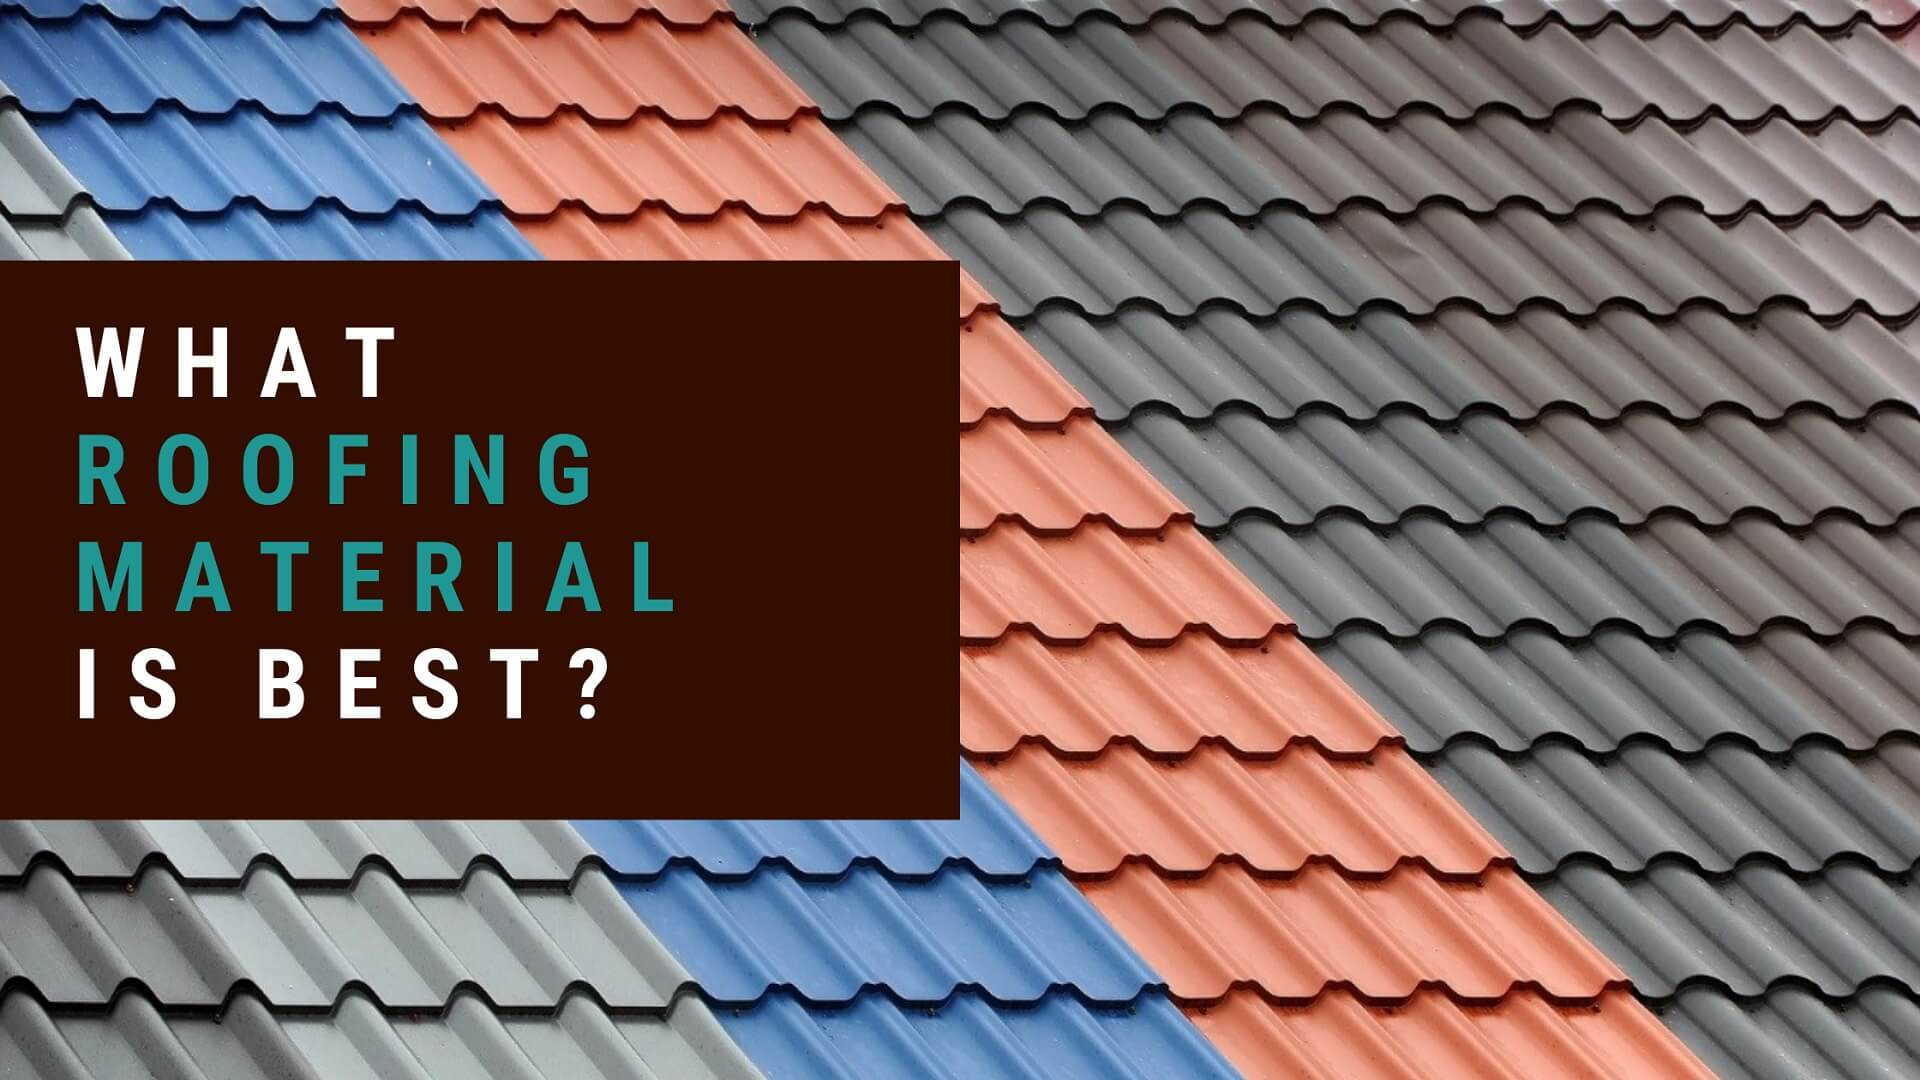 What roofing material is best